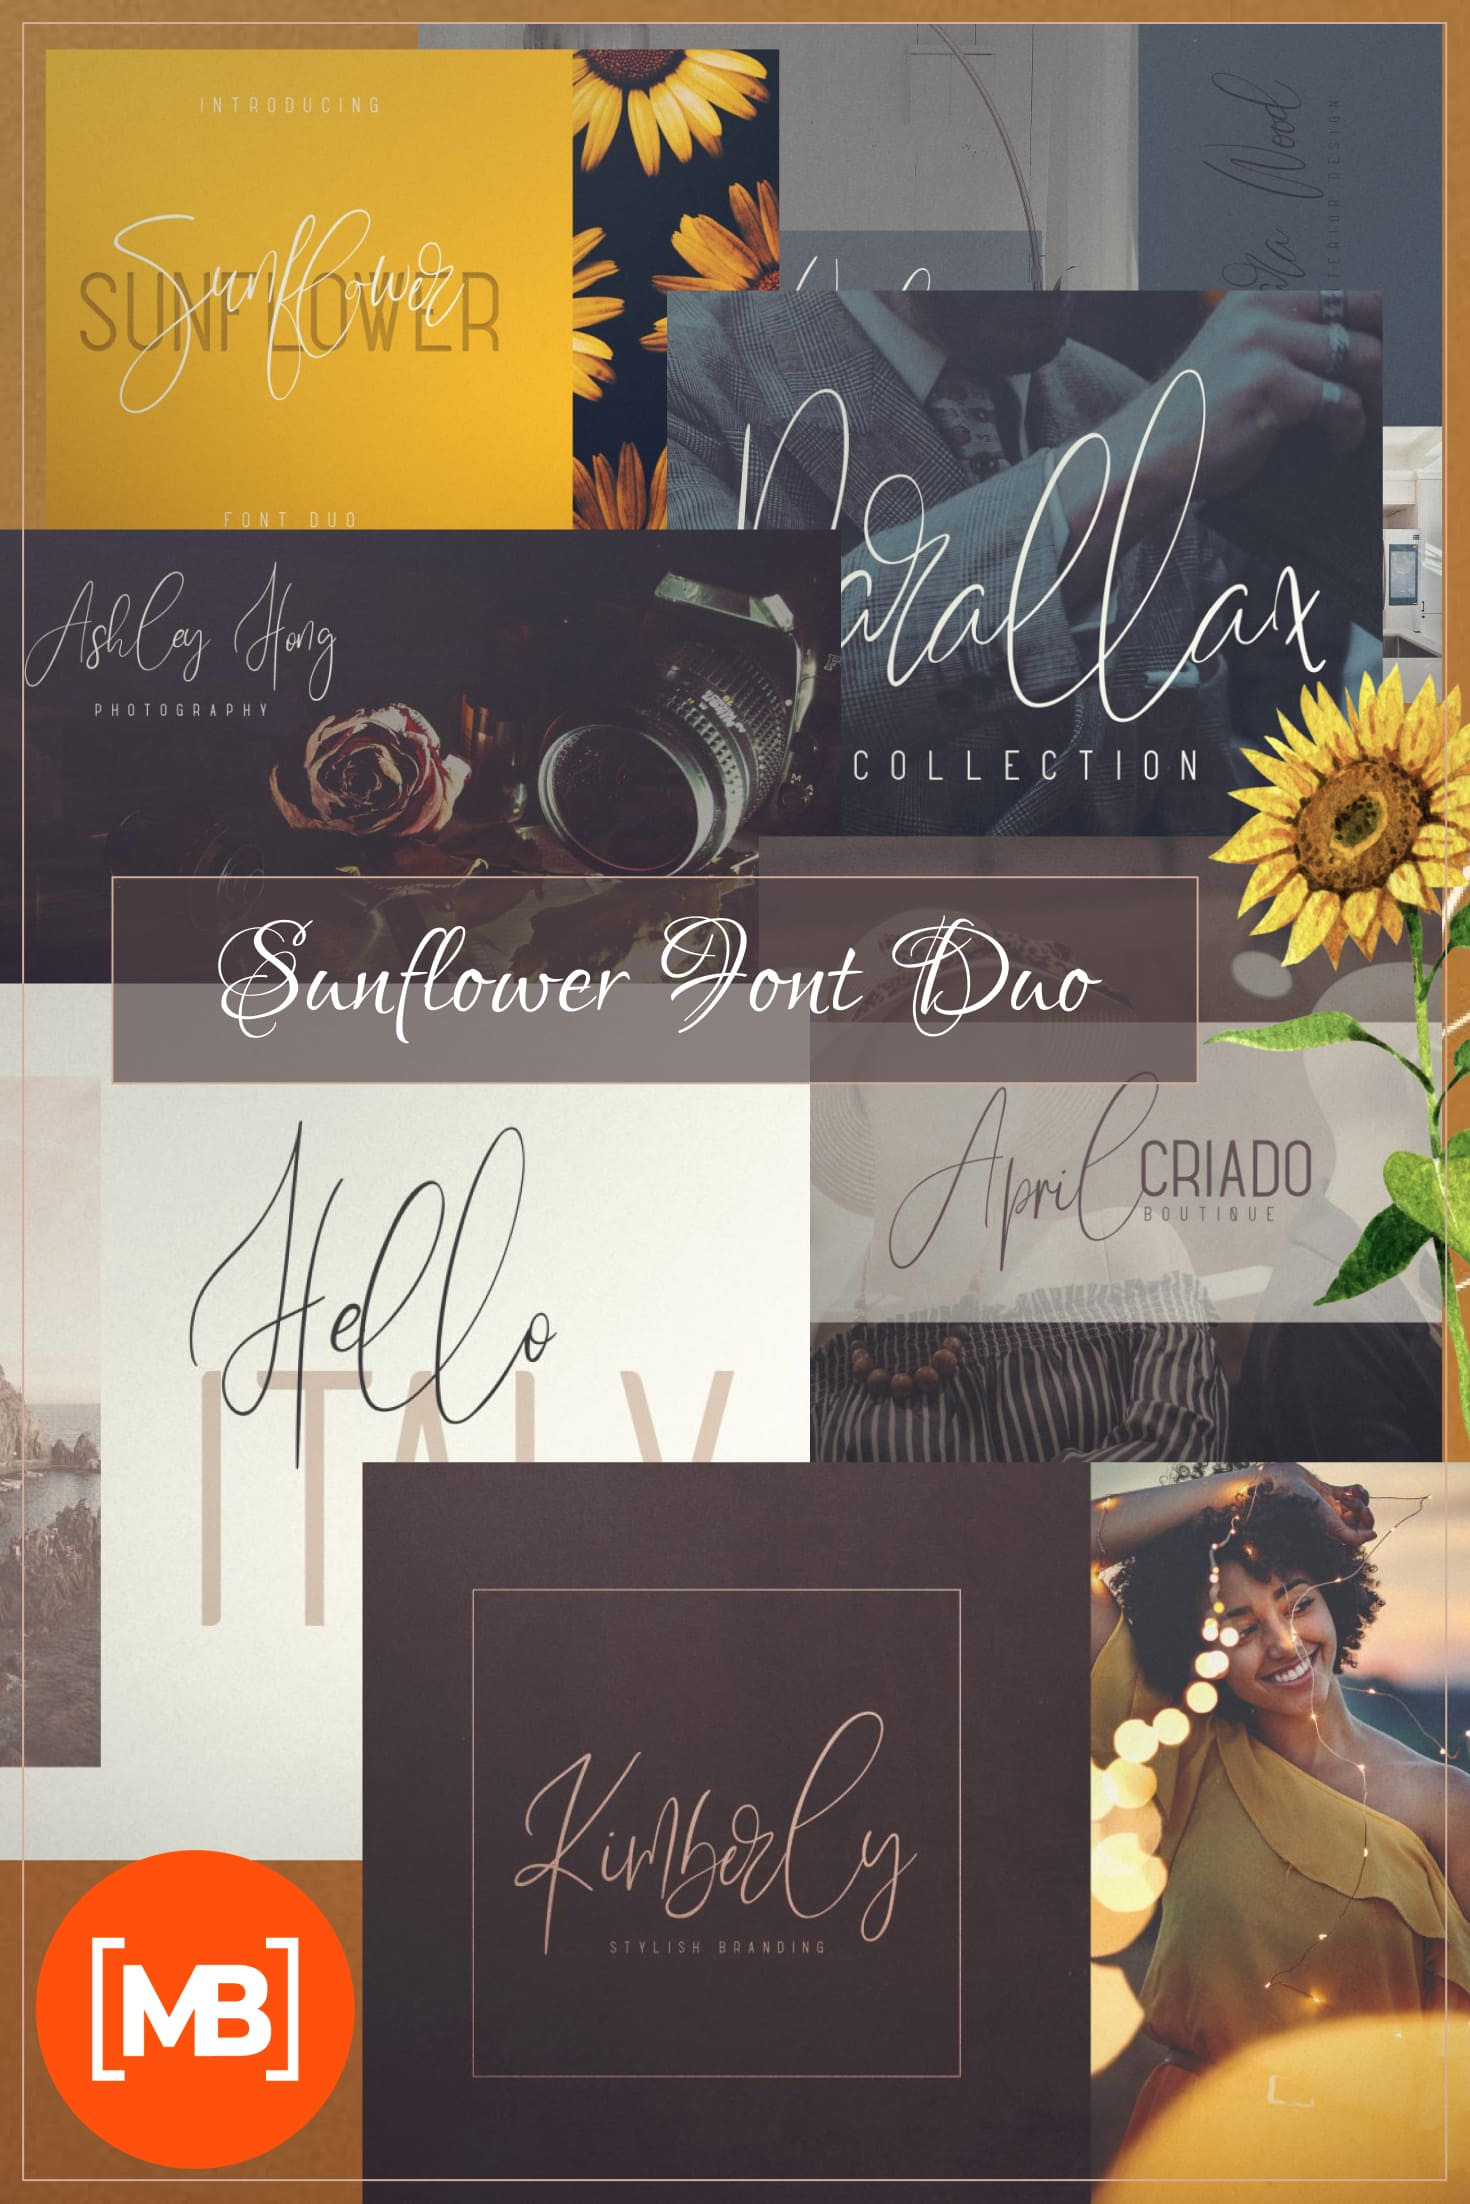 Pinterest Image: Sunflower Font Duo - Just now $19.